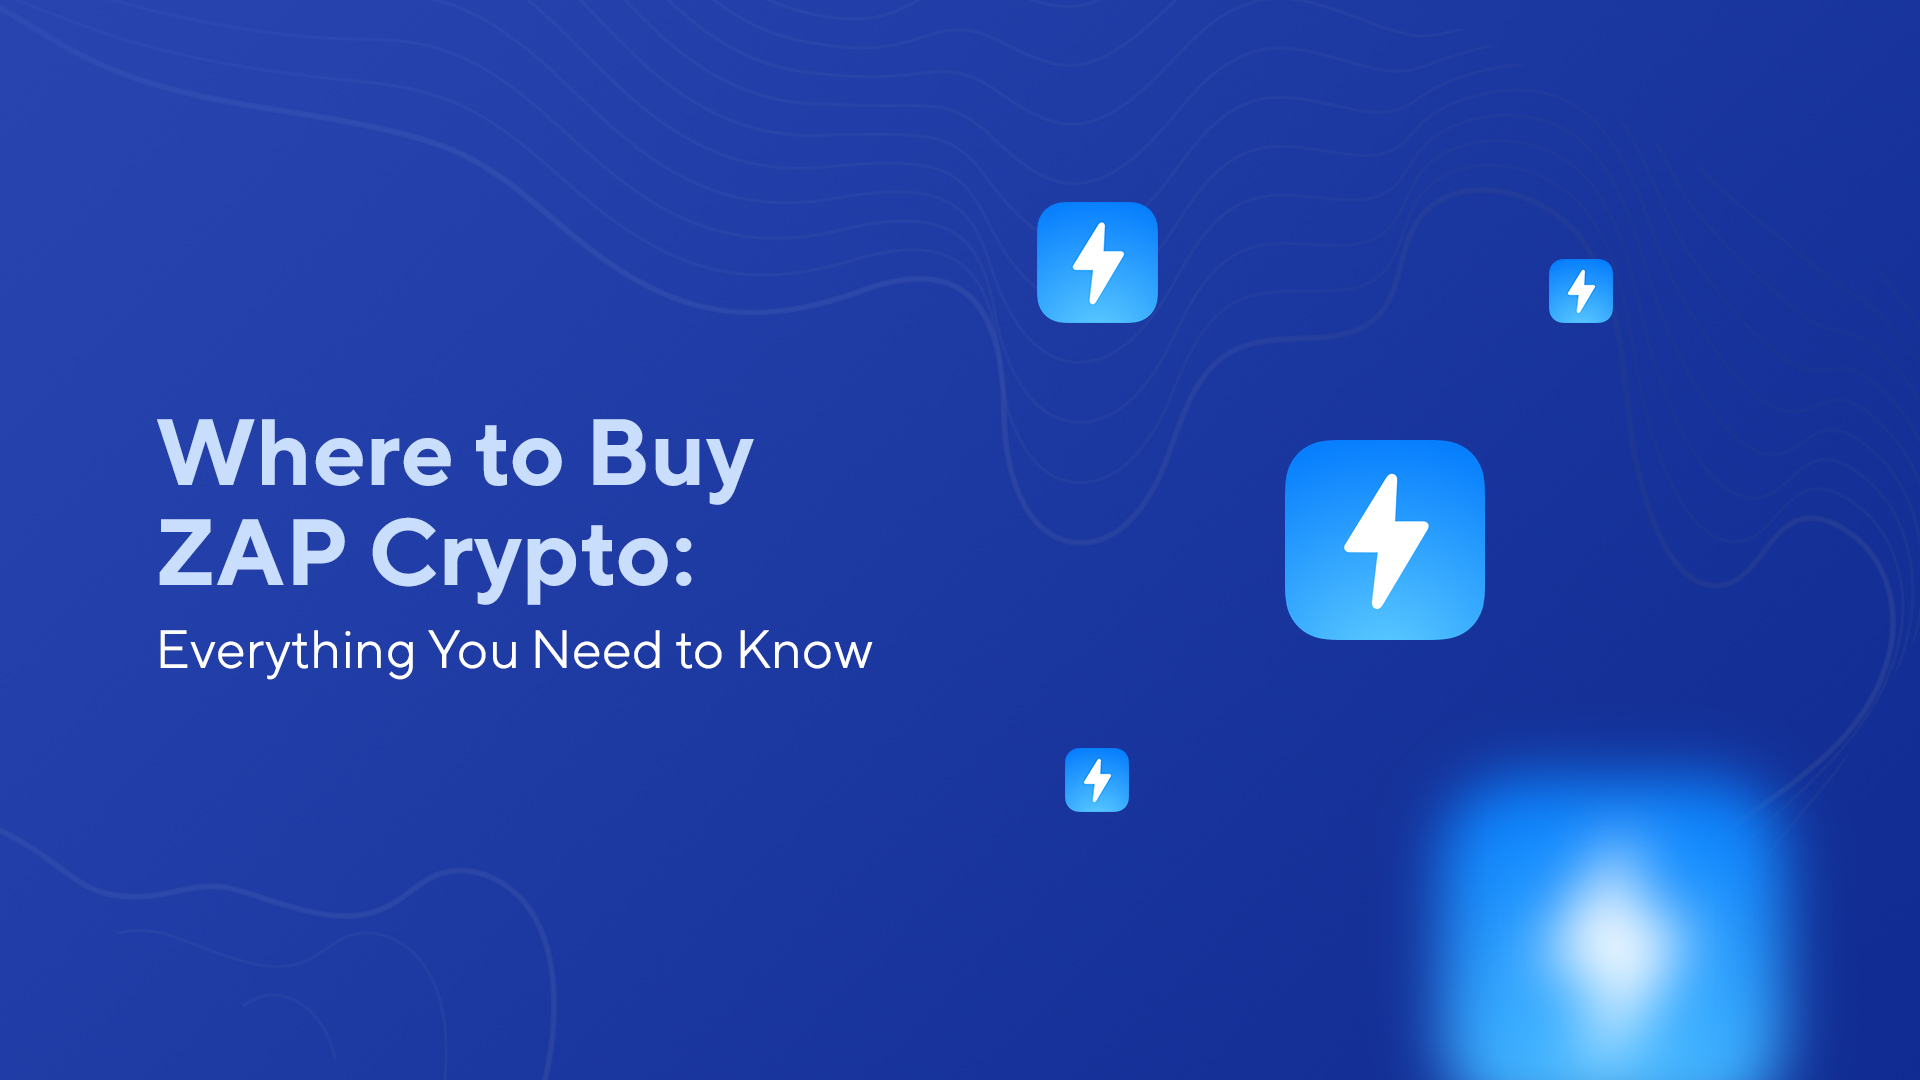 Where to Buy ZAP Crypto: Everything You Need to Know